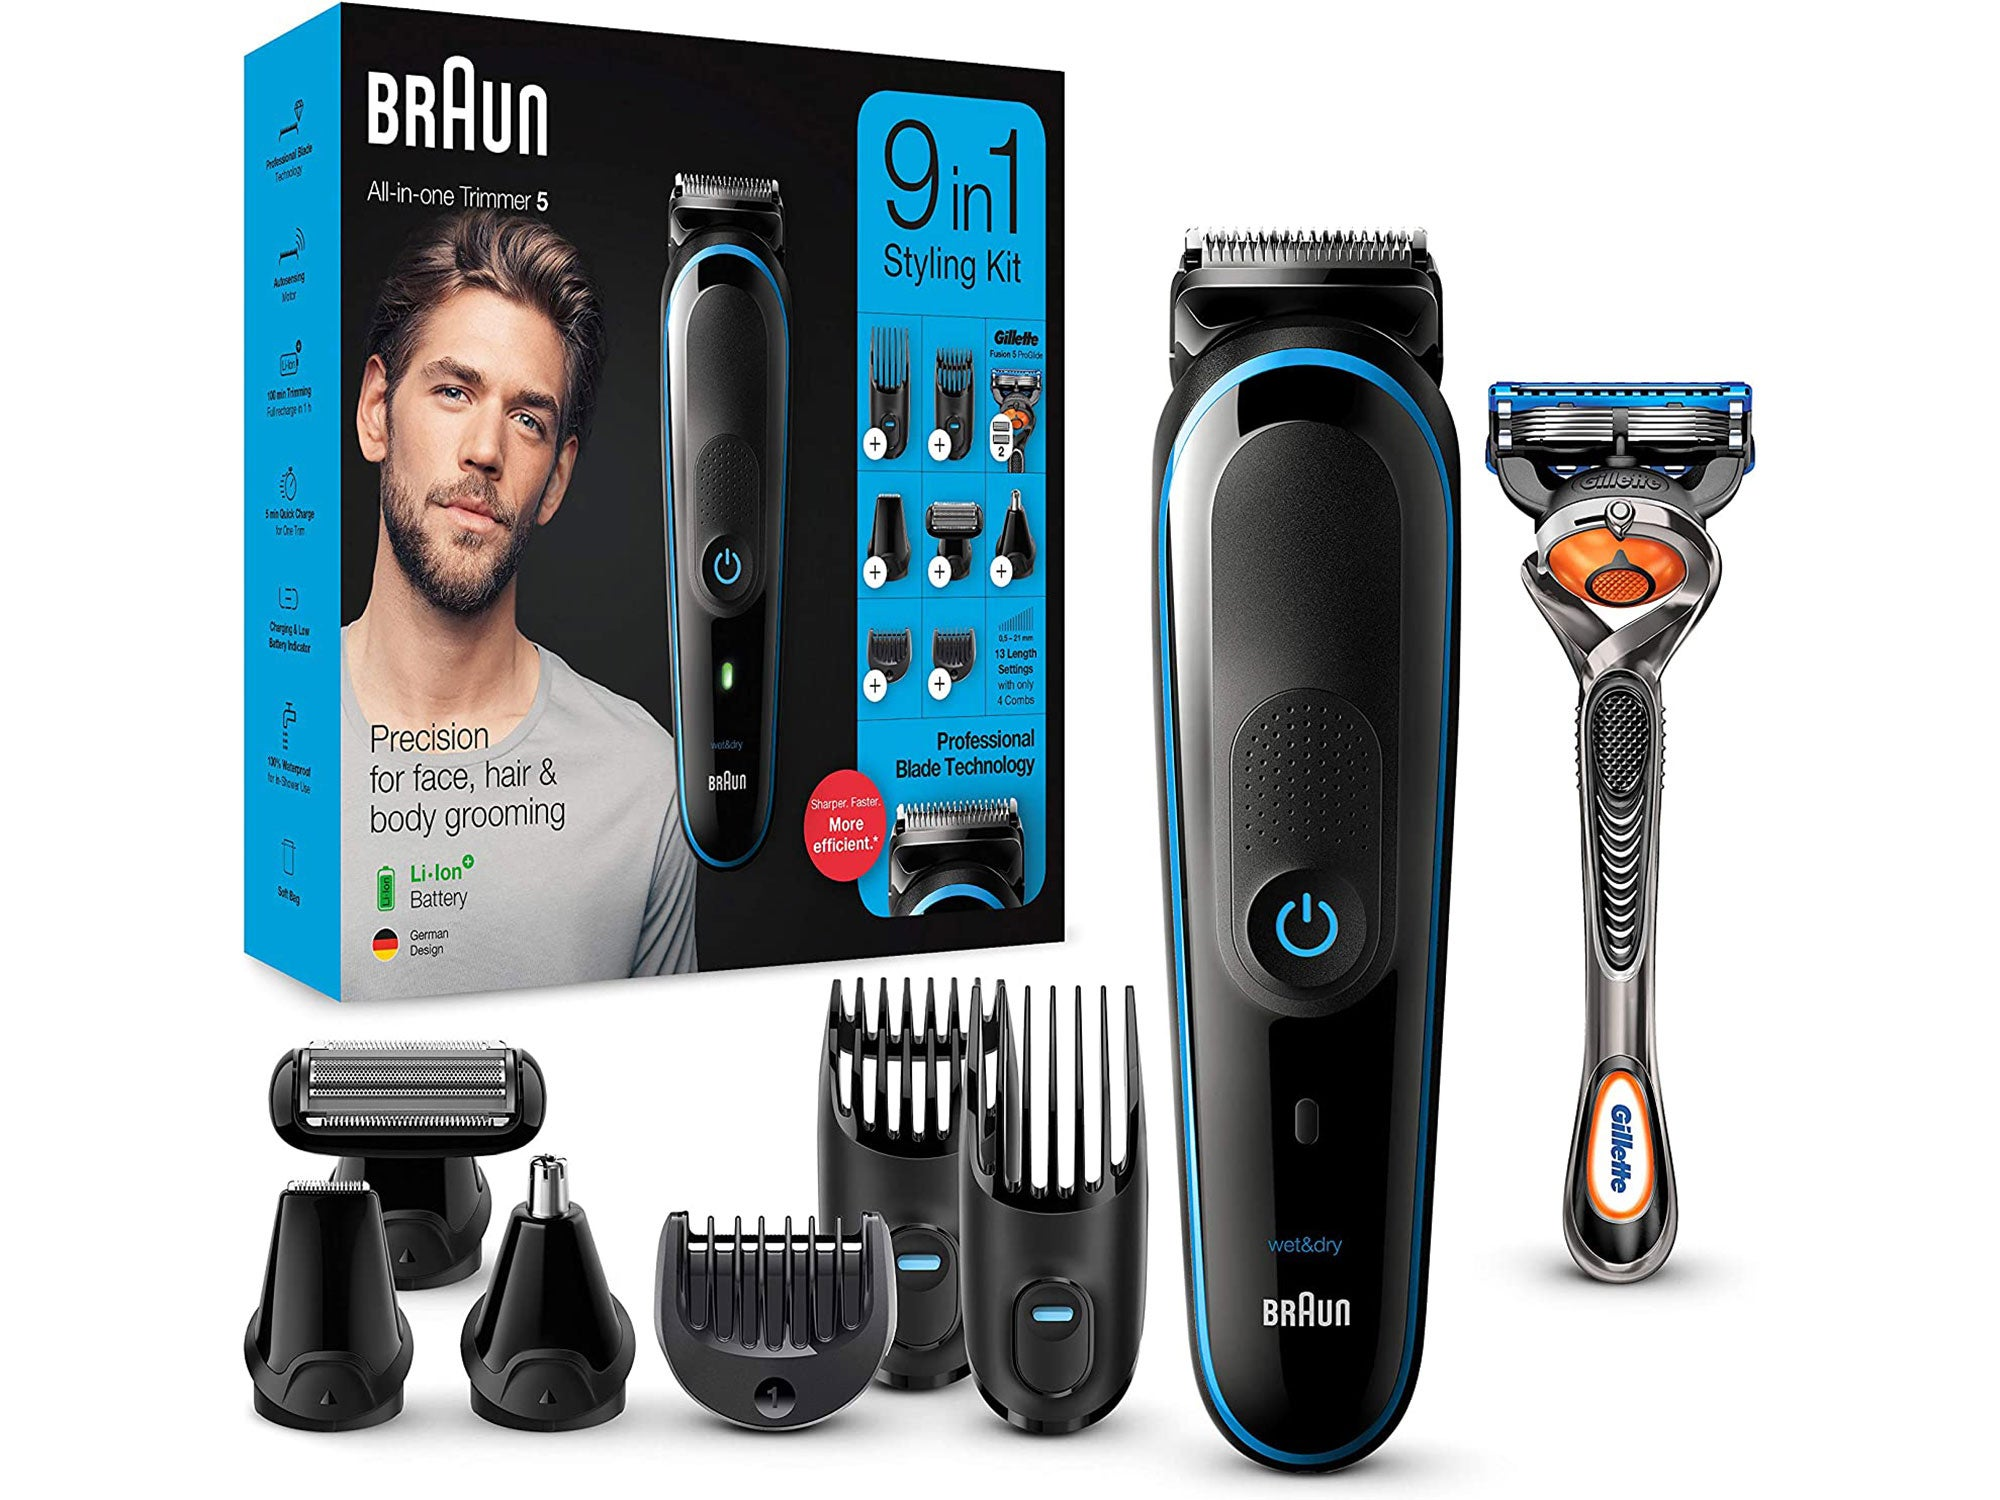 Braun 9-in-1 All-in-one Trimmer 5 MGK5280, Beard Trimmer for Men, Hair